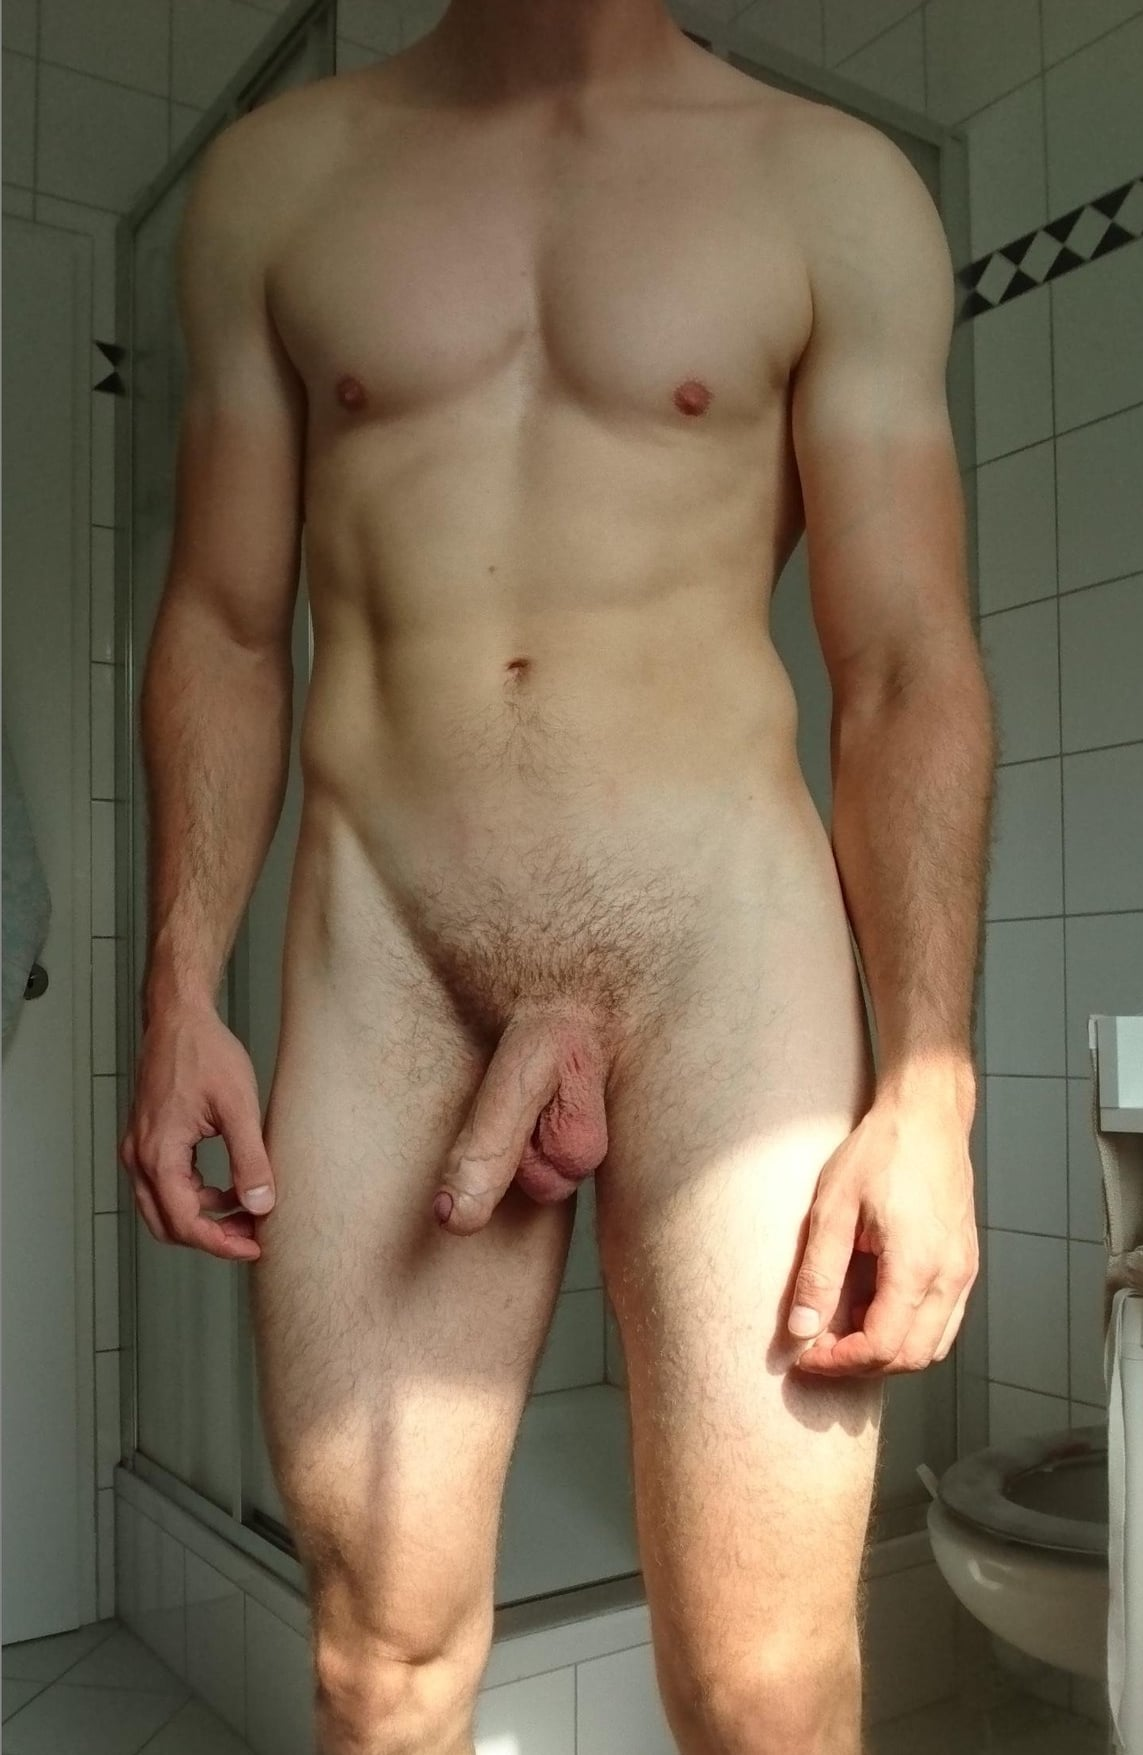 Stud with a nice uncut dick